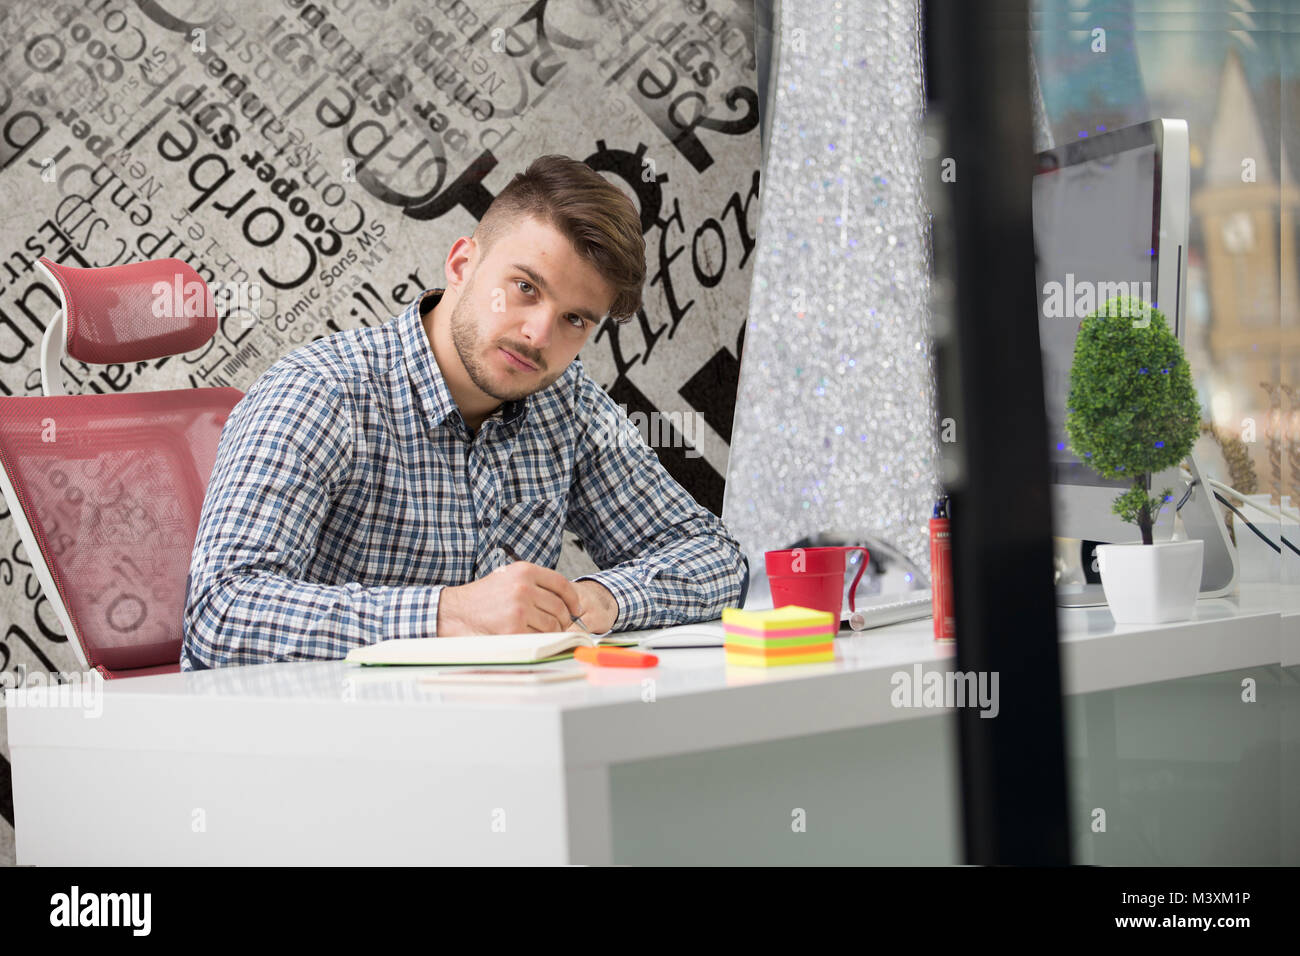 Handsome young man working with laptop in office - Stock Image